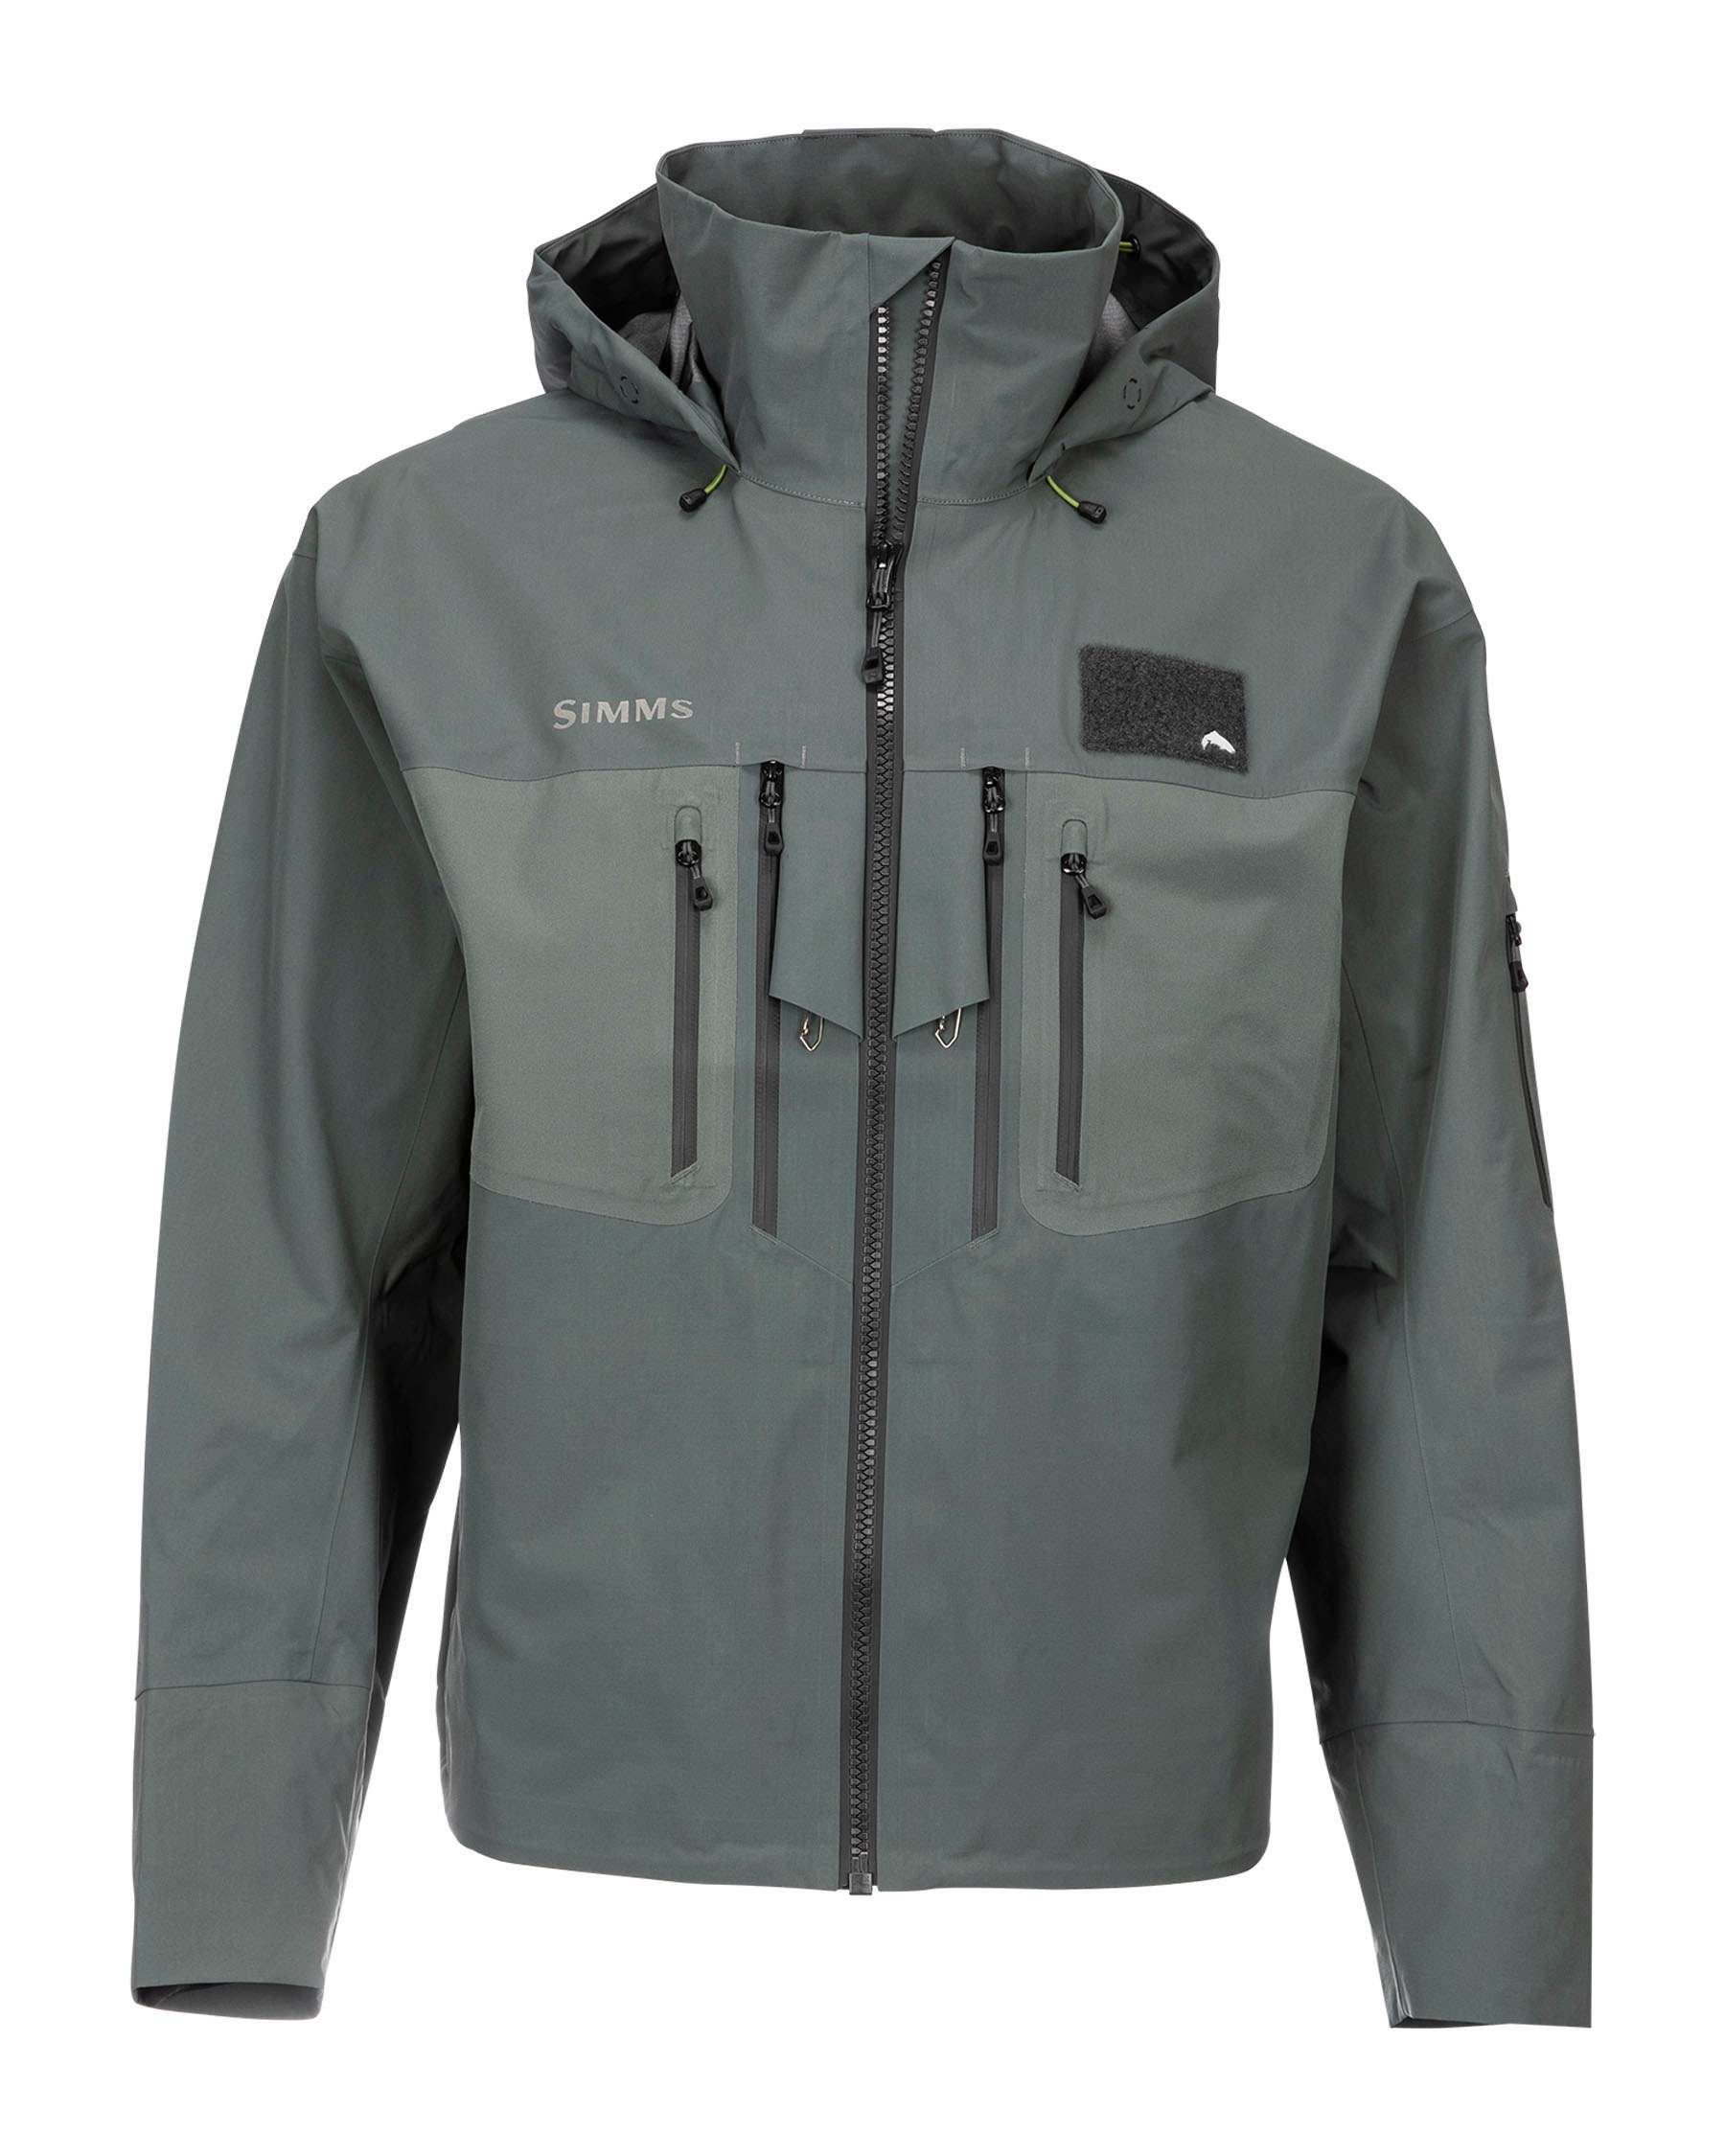 Simms-g3-guide-tactical-jacket-shadow-green